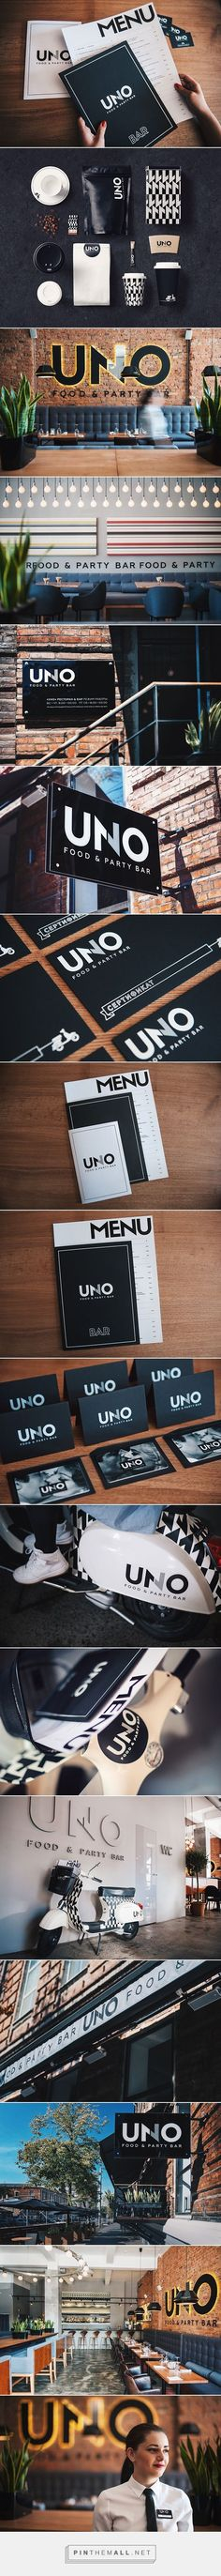 Ideas creativas para hosteleria: Uno Food and Party Bar. Carta y otros elementos creativos para restaurantes.